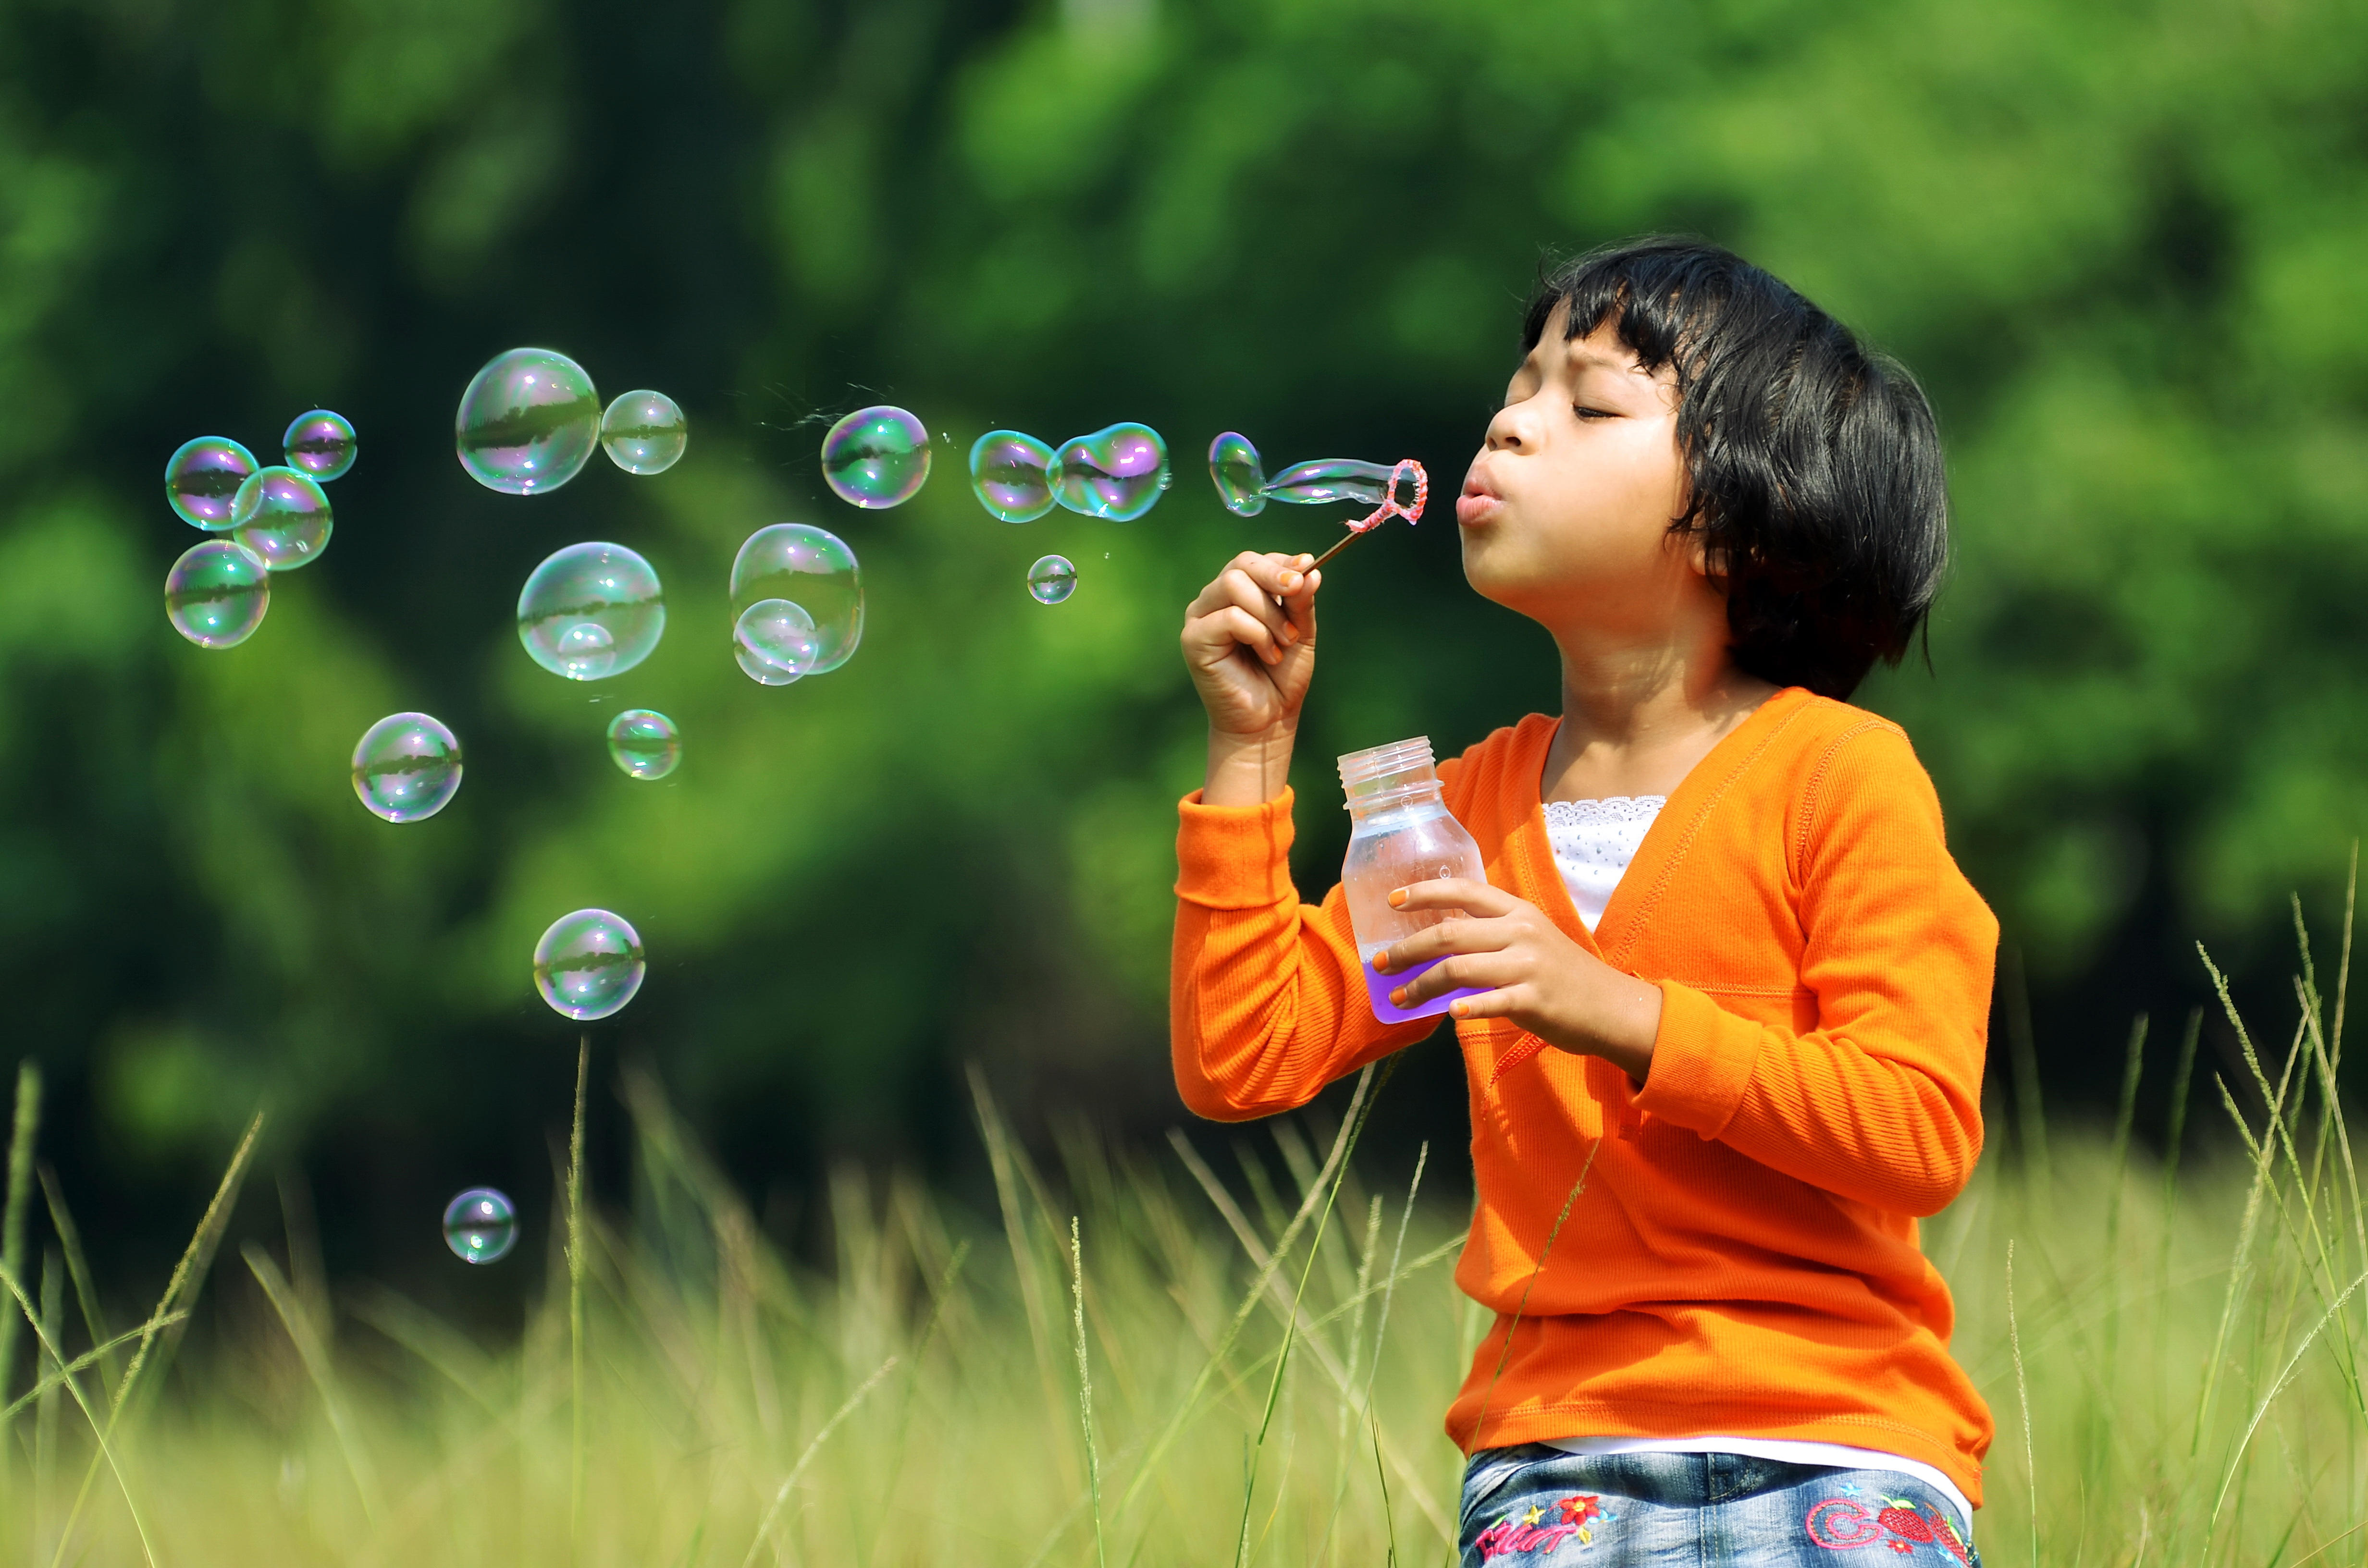 Young girl plays while blowing bubbles outside